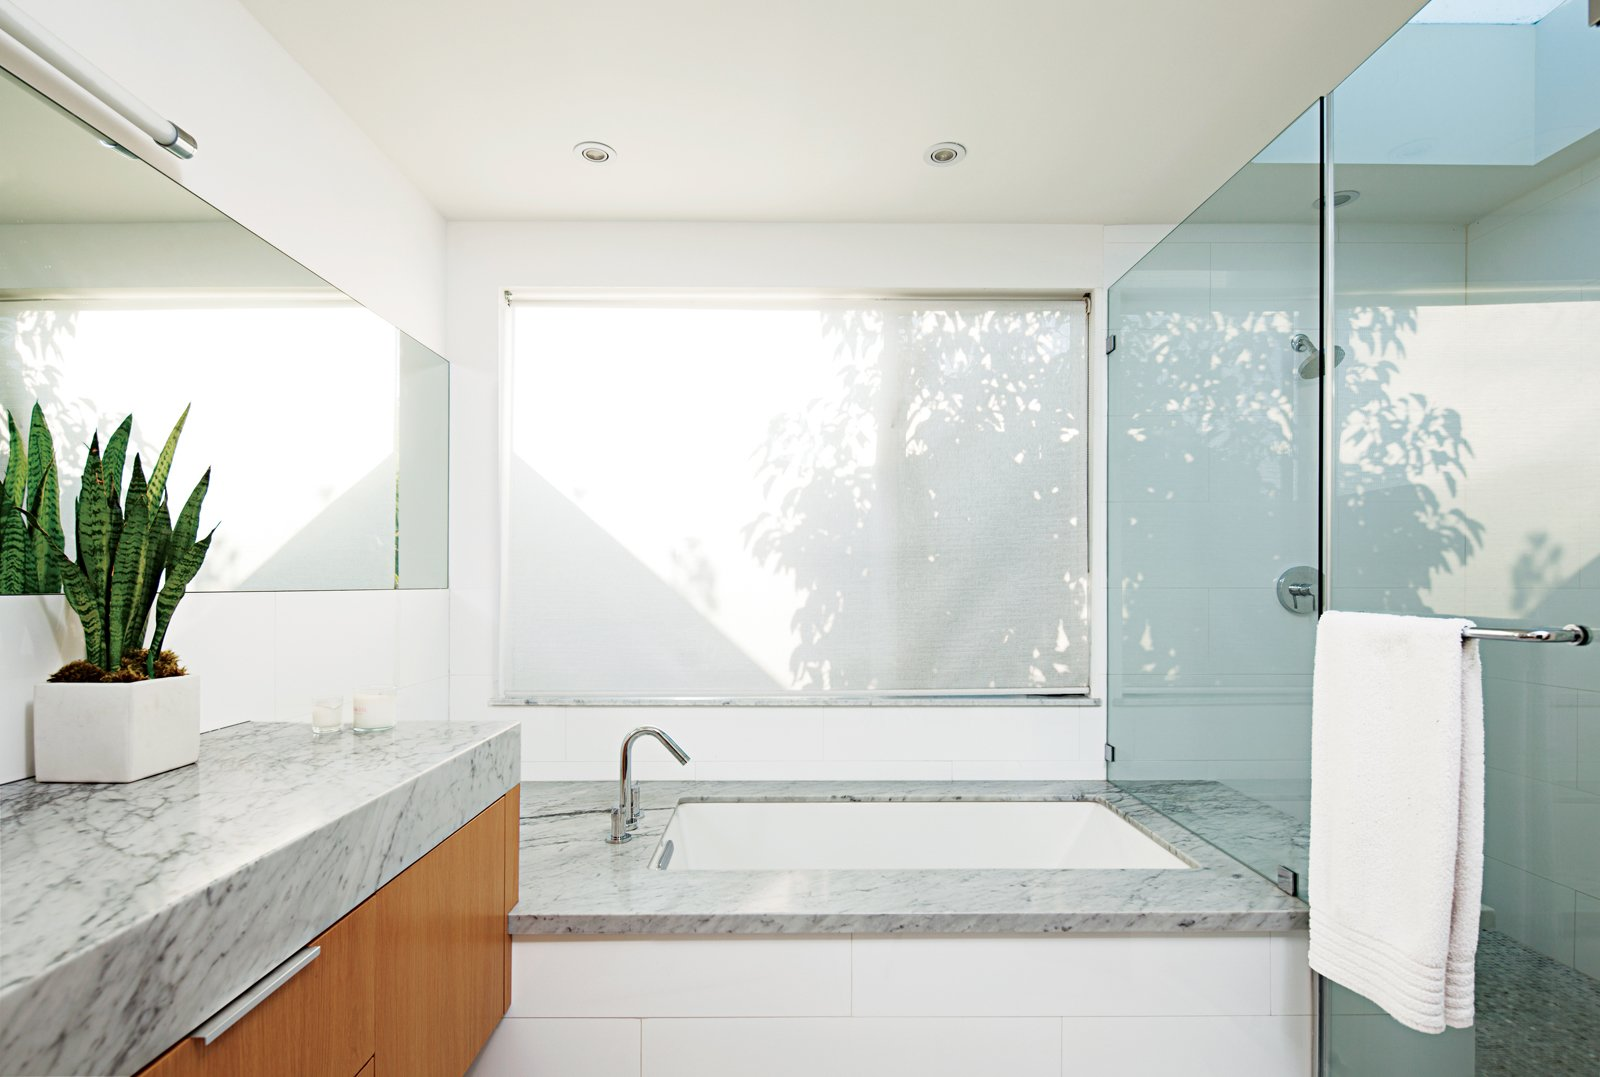 Dwell - 8 Inspiring Minimalist Bathrooms